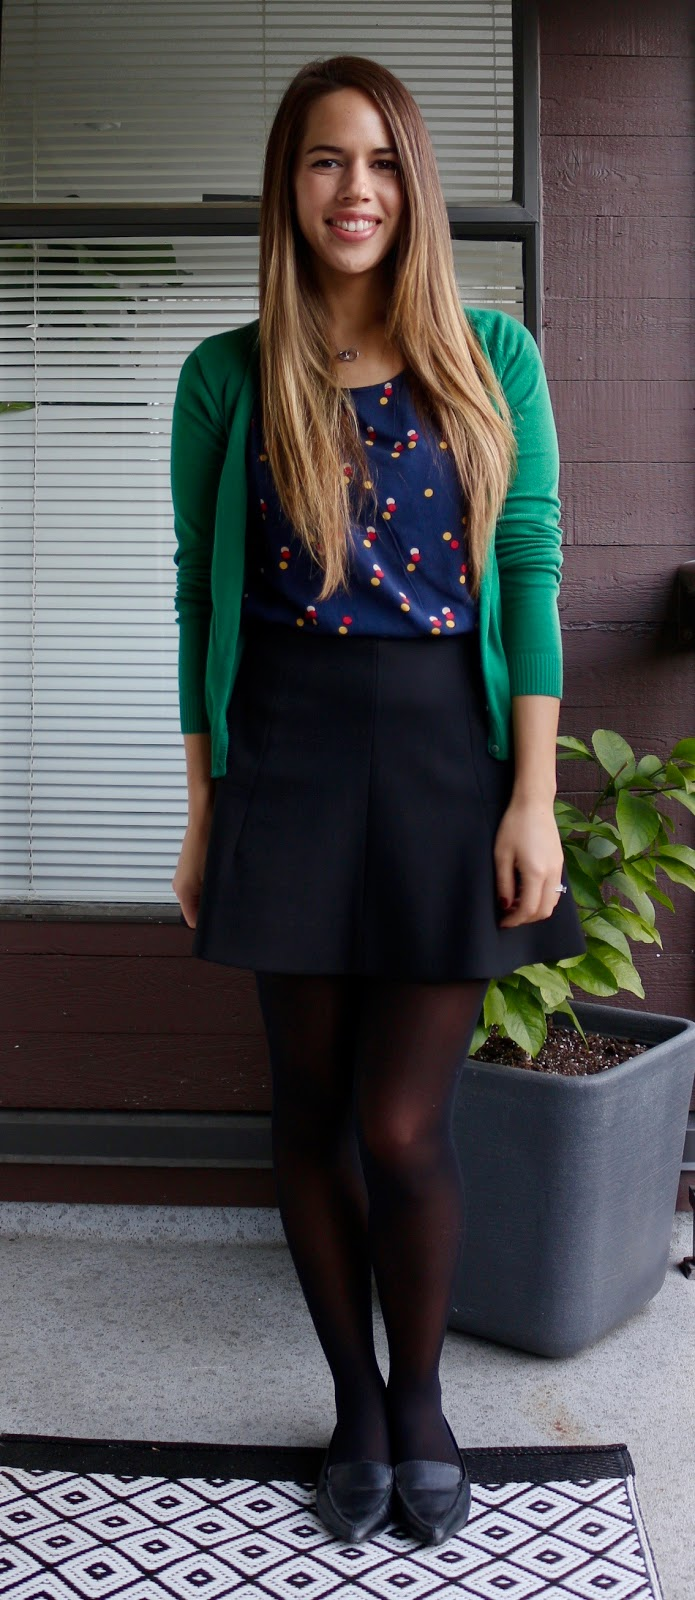 Jules in Flats - Festive Work Outfit with Mini Skirt